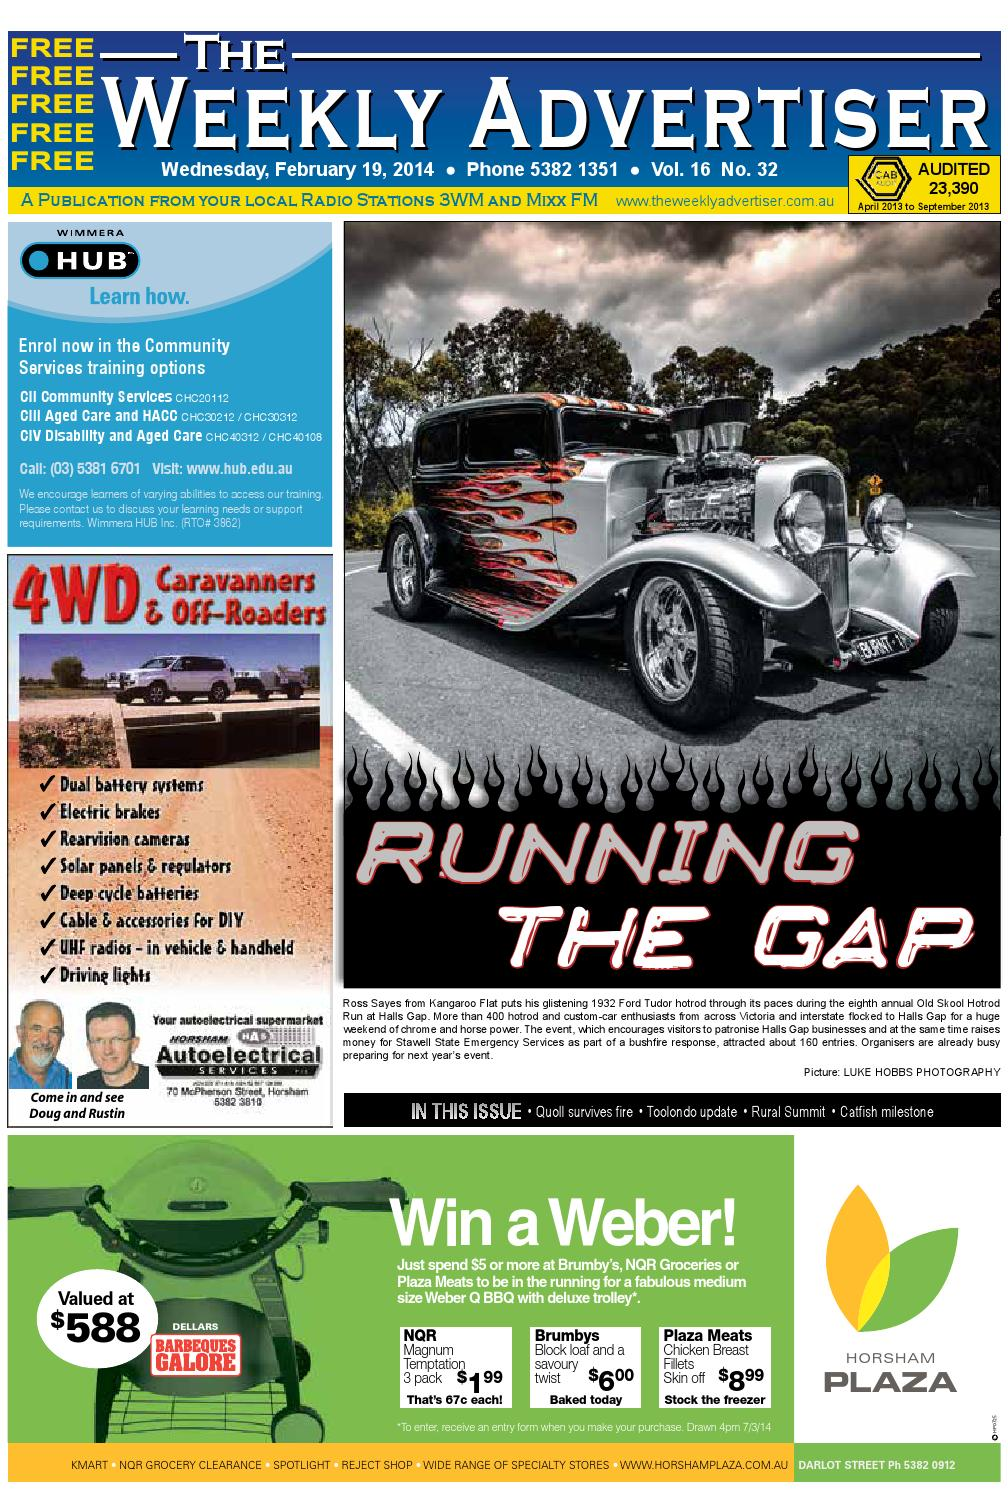 5c1aec7d The Weekly Advertiser - Wednesday, February 19, 2014 by The Weekly  Advertiser - issuu